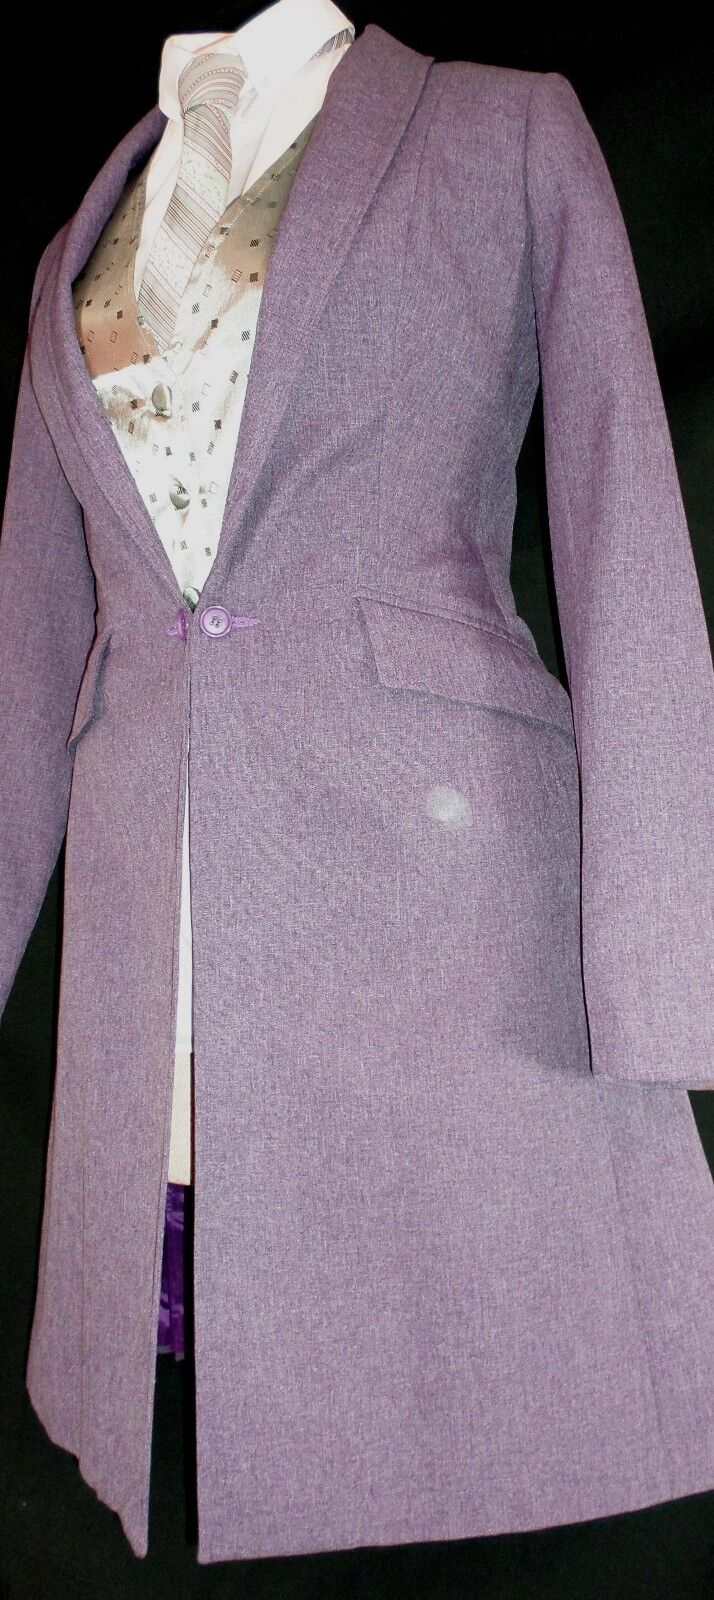 Reed  Hill Ladies Saddleseat Day Coat Lt. Plum Heather Polyester size 10 - USA  creative products